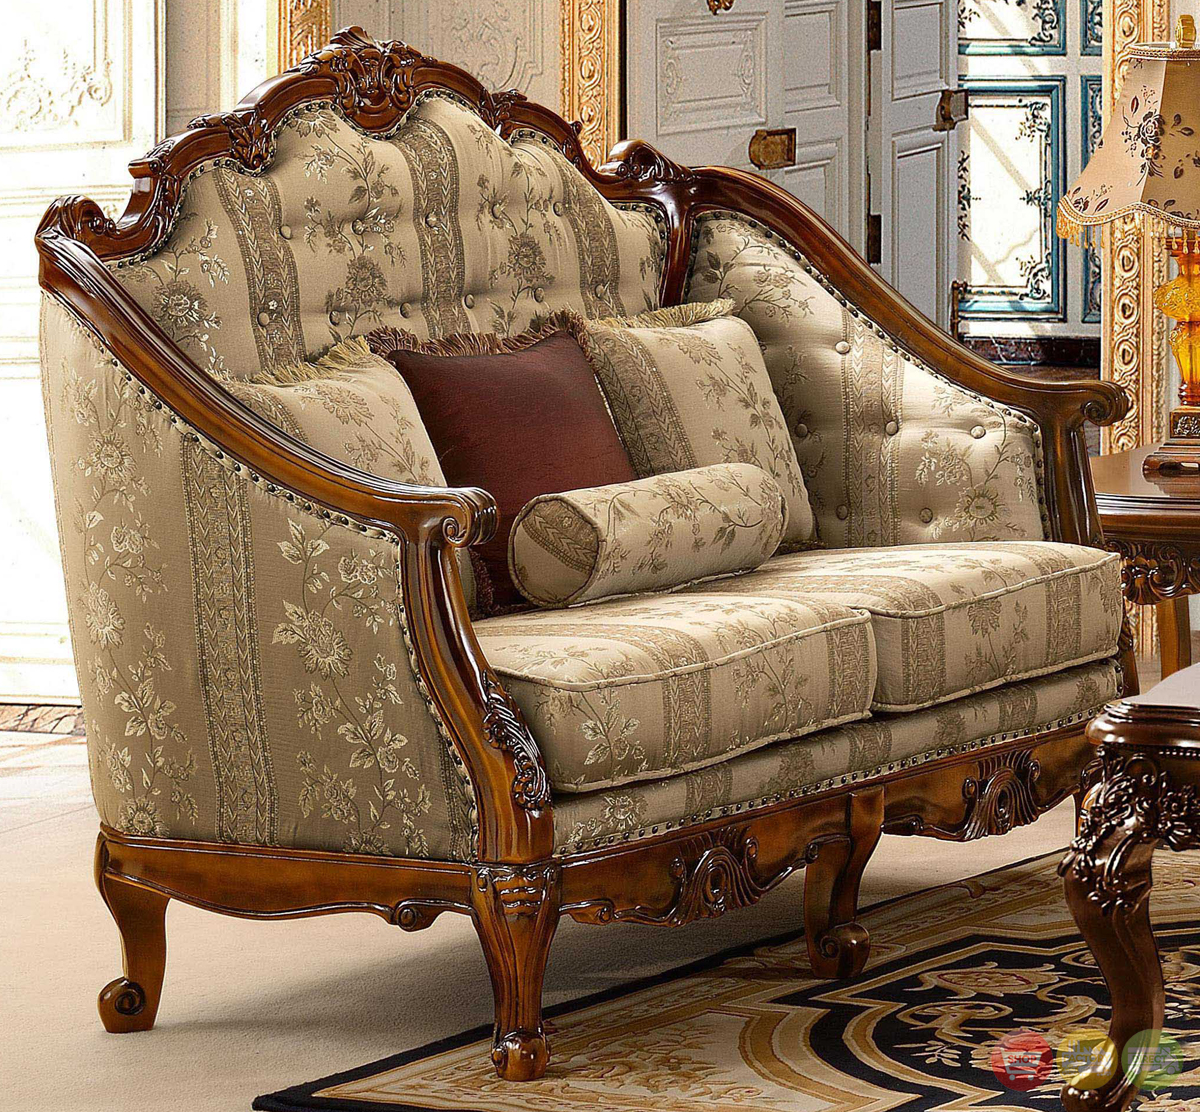 Vintage style living room furniture modern house - Reasons choosing vintage style furniture ...